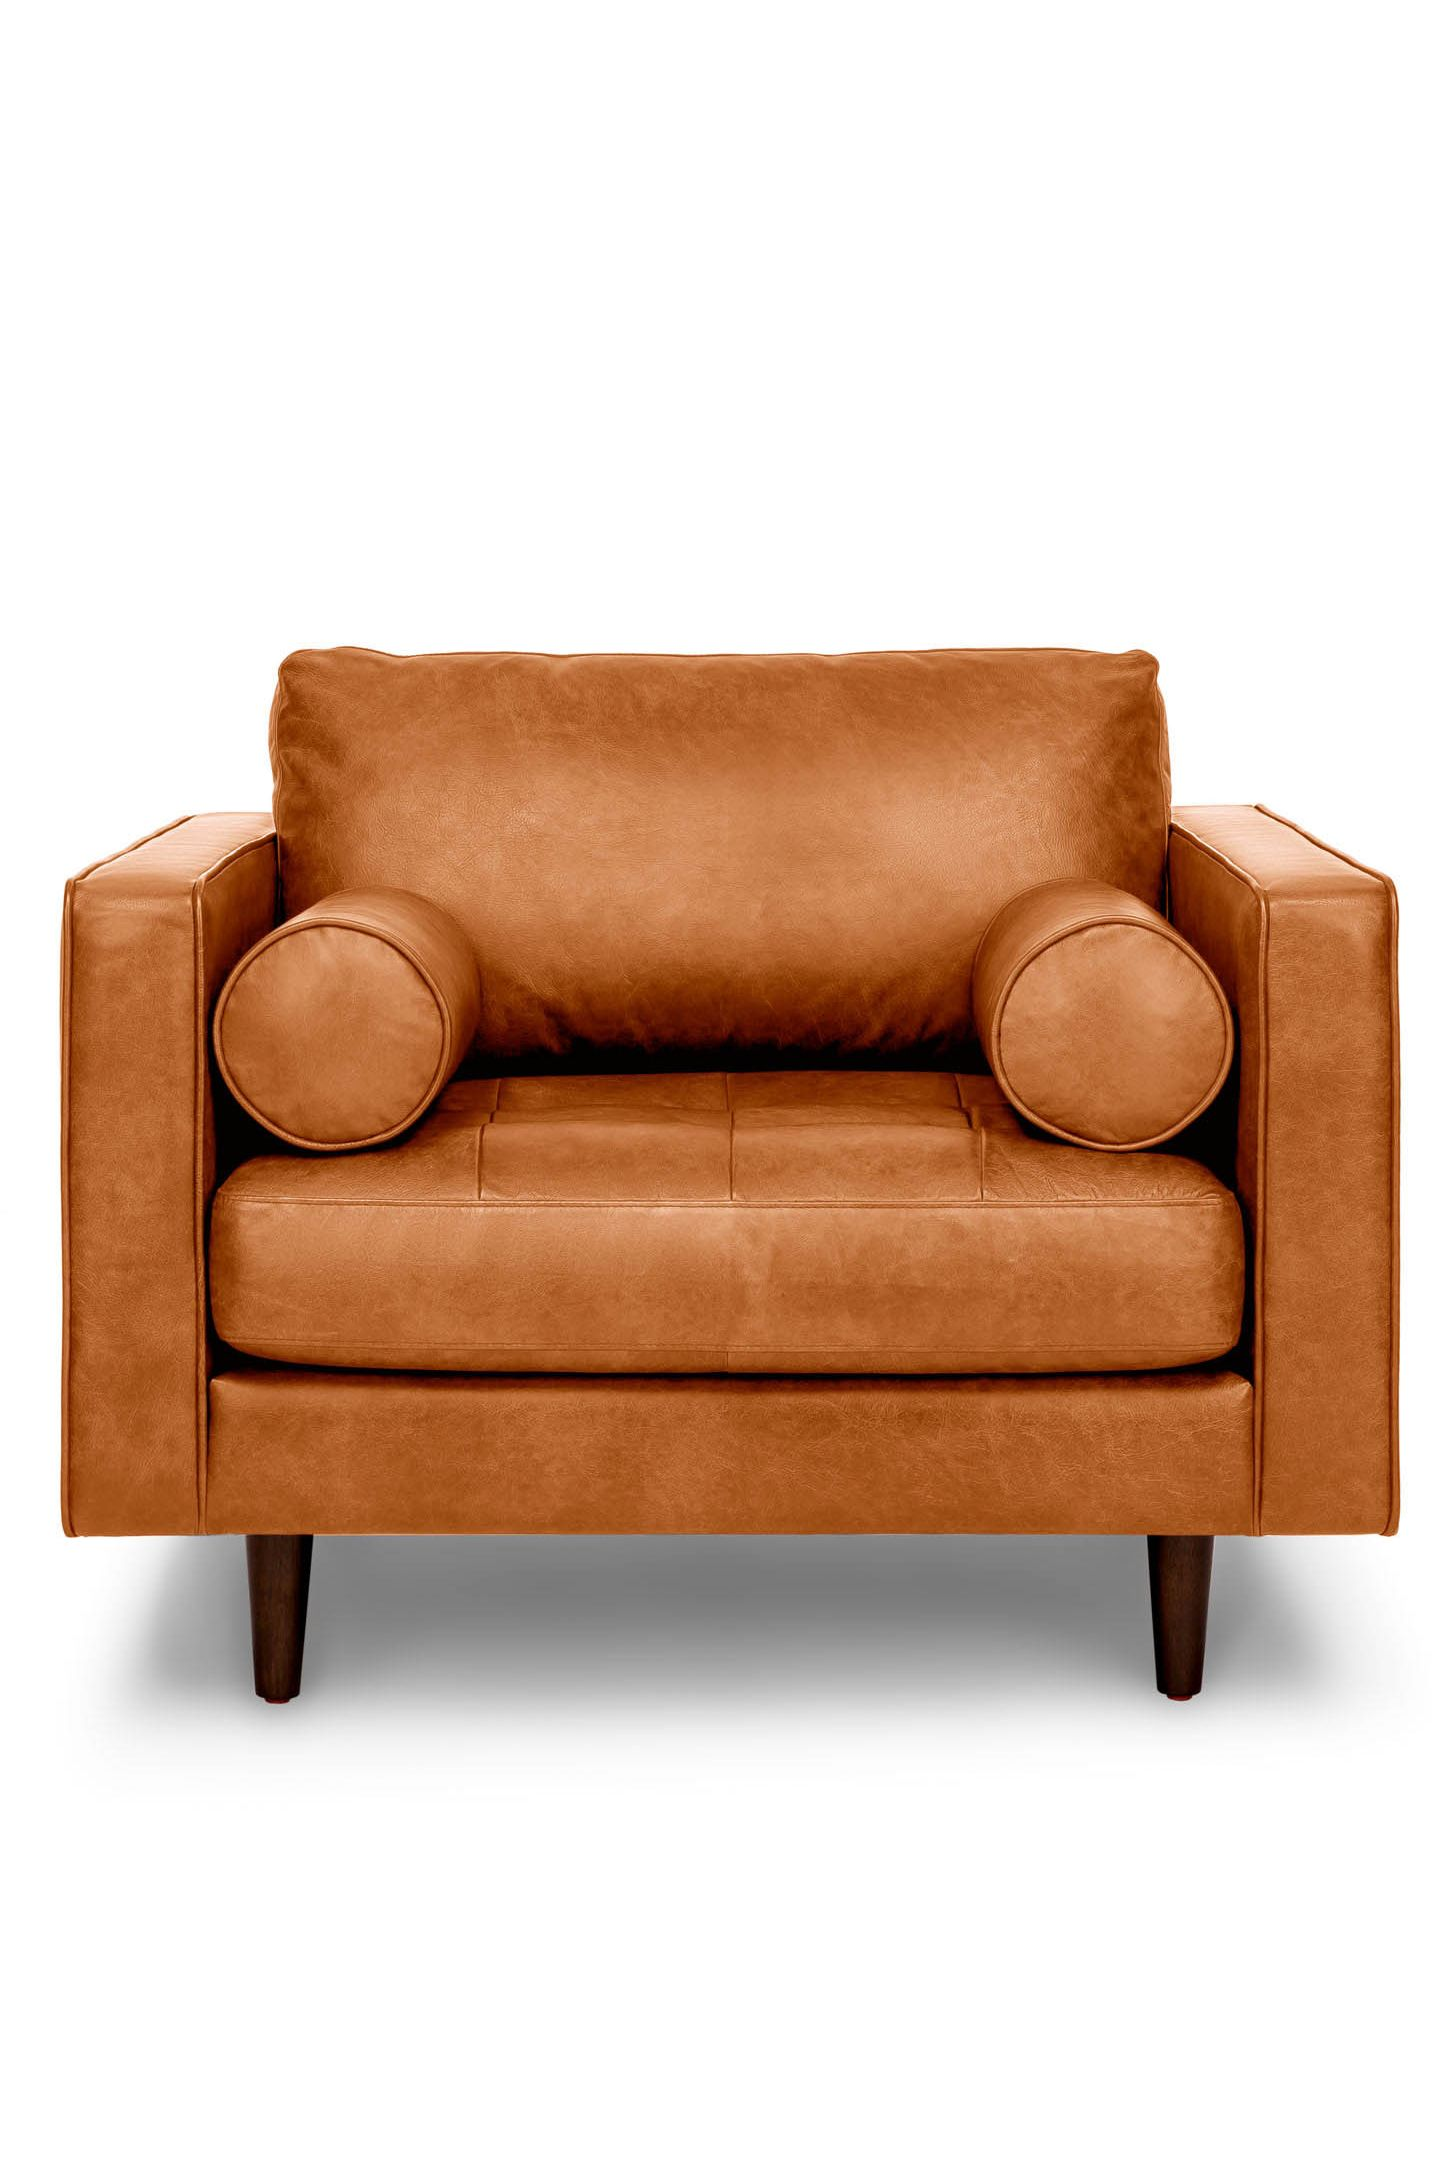 Tan Leather Tufted Chair Upholstered